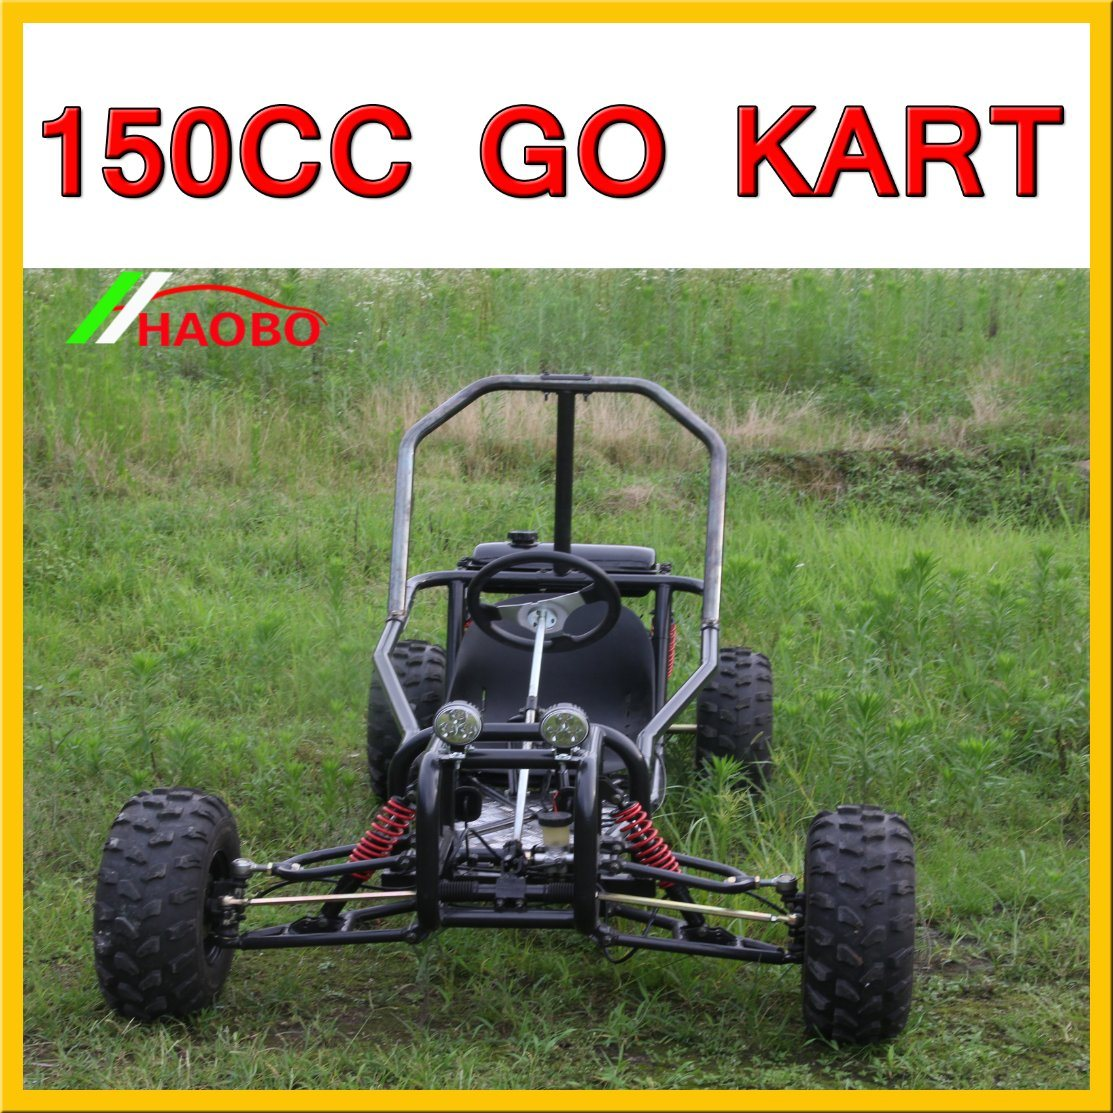 The Seat Can Be Removed Foward and Backward 150cc Go Kart